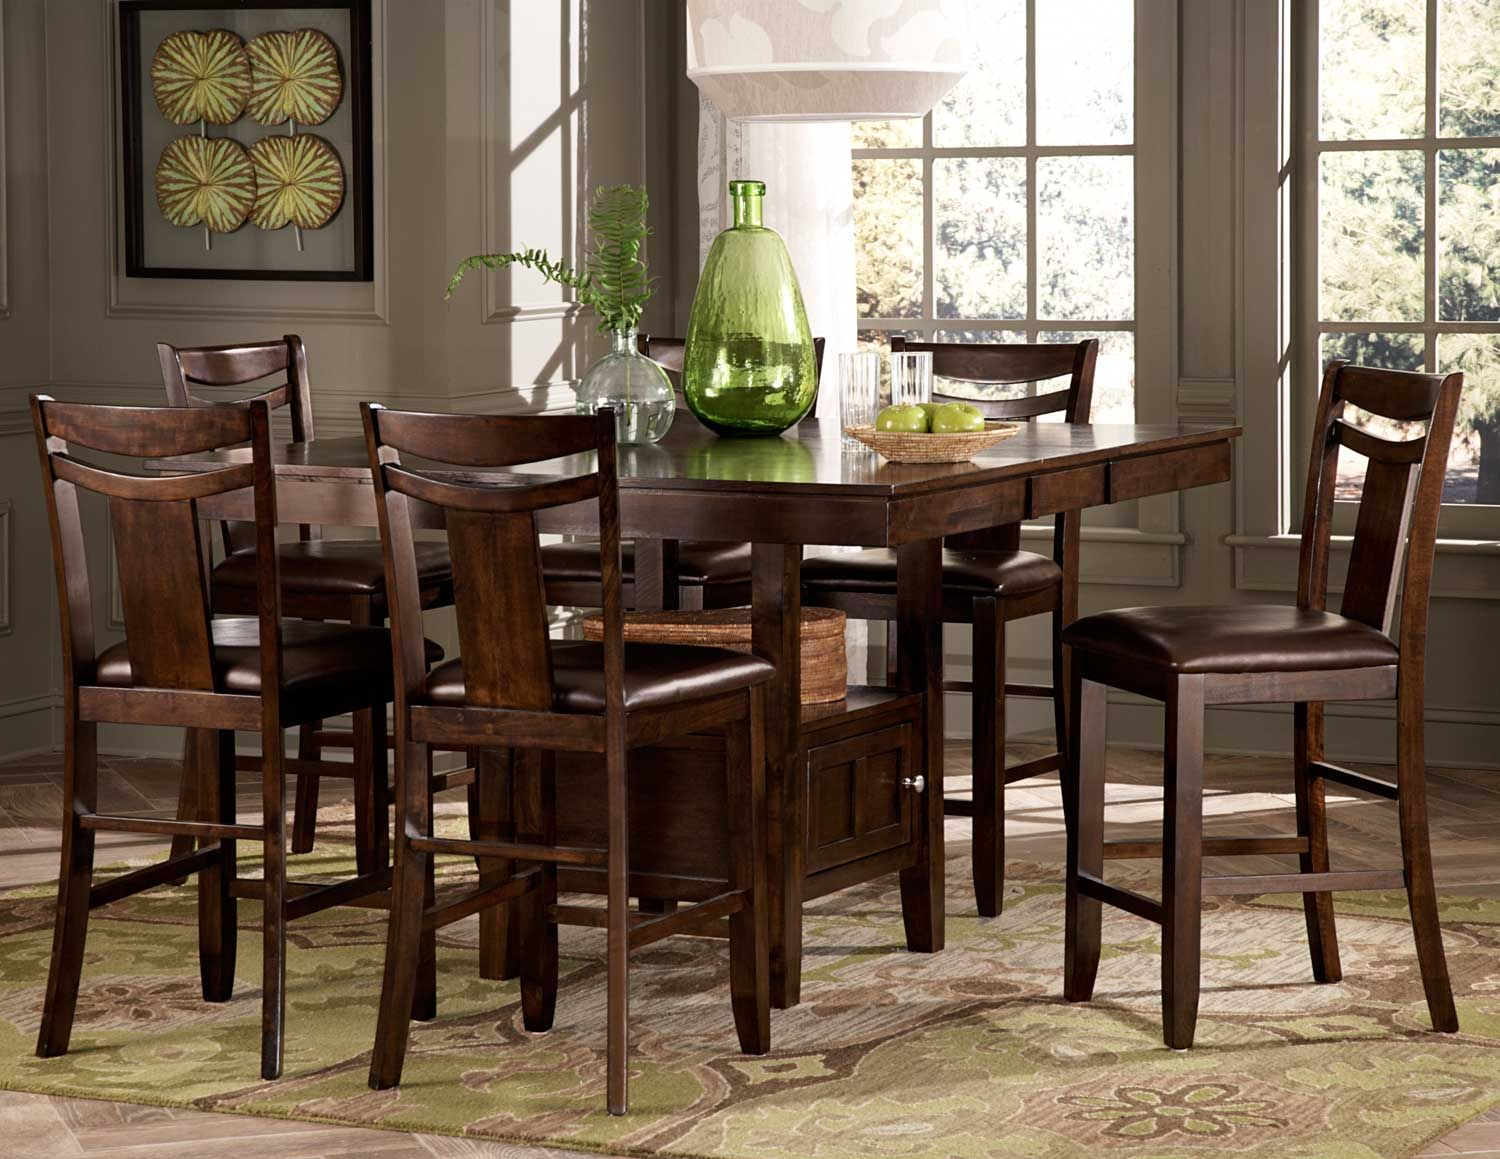 Homelegance 2524 36 Broome Counter Height Dining Table Set